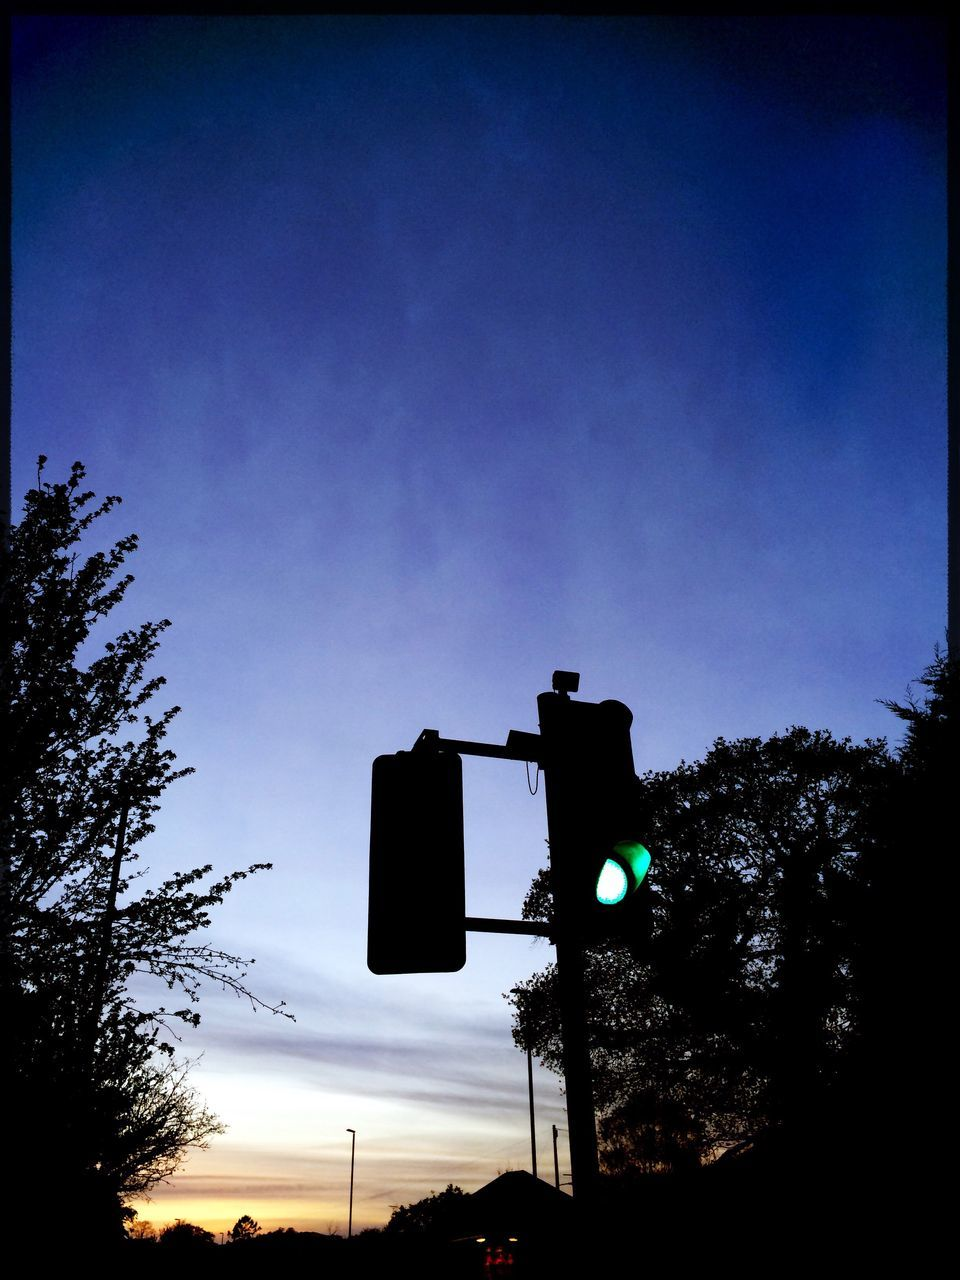 tree, low angle view, blue, traffic light, silhouette, sky, sunset, communication, outdoors, no people, stoplight, transportation, day, road sign, signal, clear sky, nature